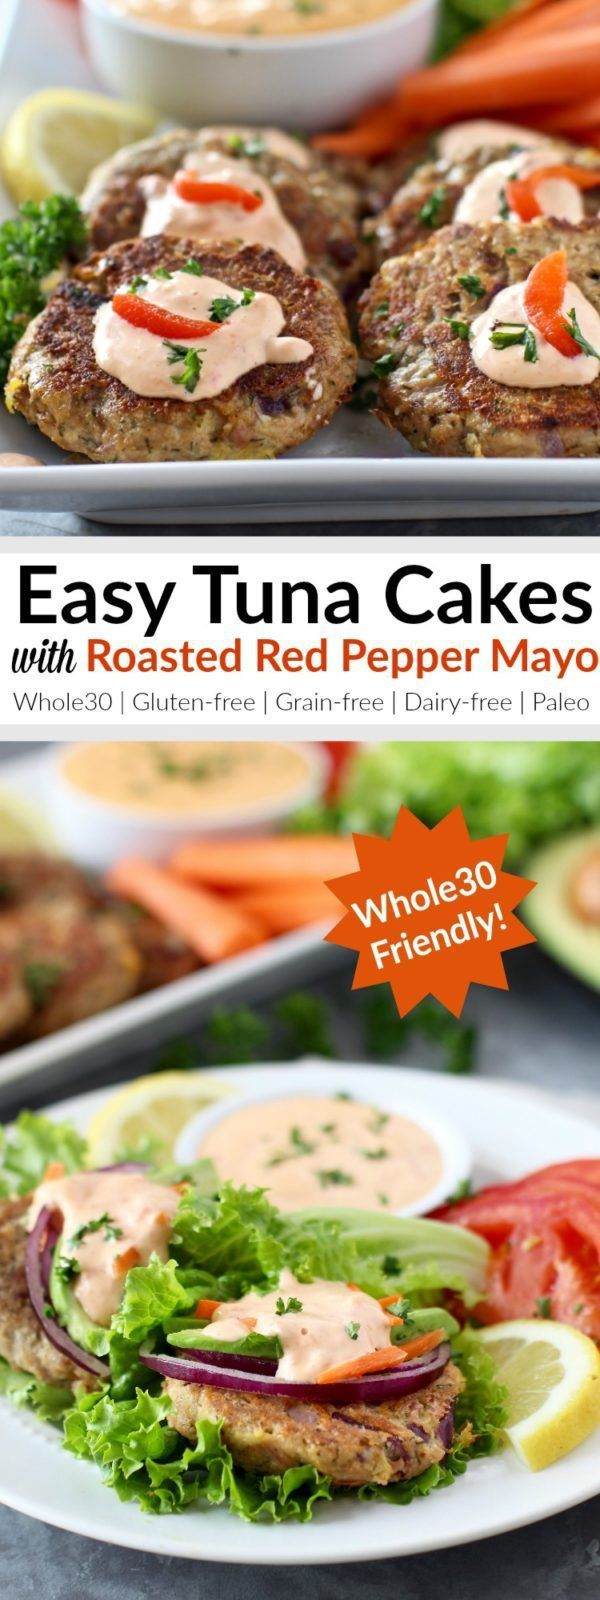 Put food on the table in less than 30 minutes with these Whole30-friendly, Easy Tuna Cakes that are topped with a 3-ingredient Roasted Red Pepper Mayo. A recipe that's fast, healthy and delicious and one that everyone will love! | Whole30 | Paleo | Grain-free | Gluten-free | Dairy-free | http://therealfoodrds.com/easy-tuna-cakes/